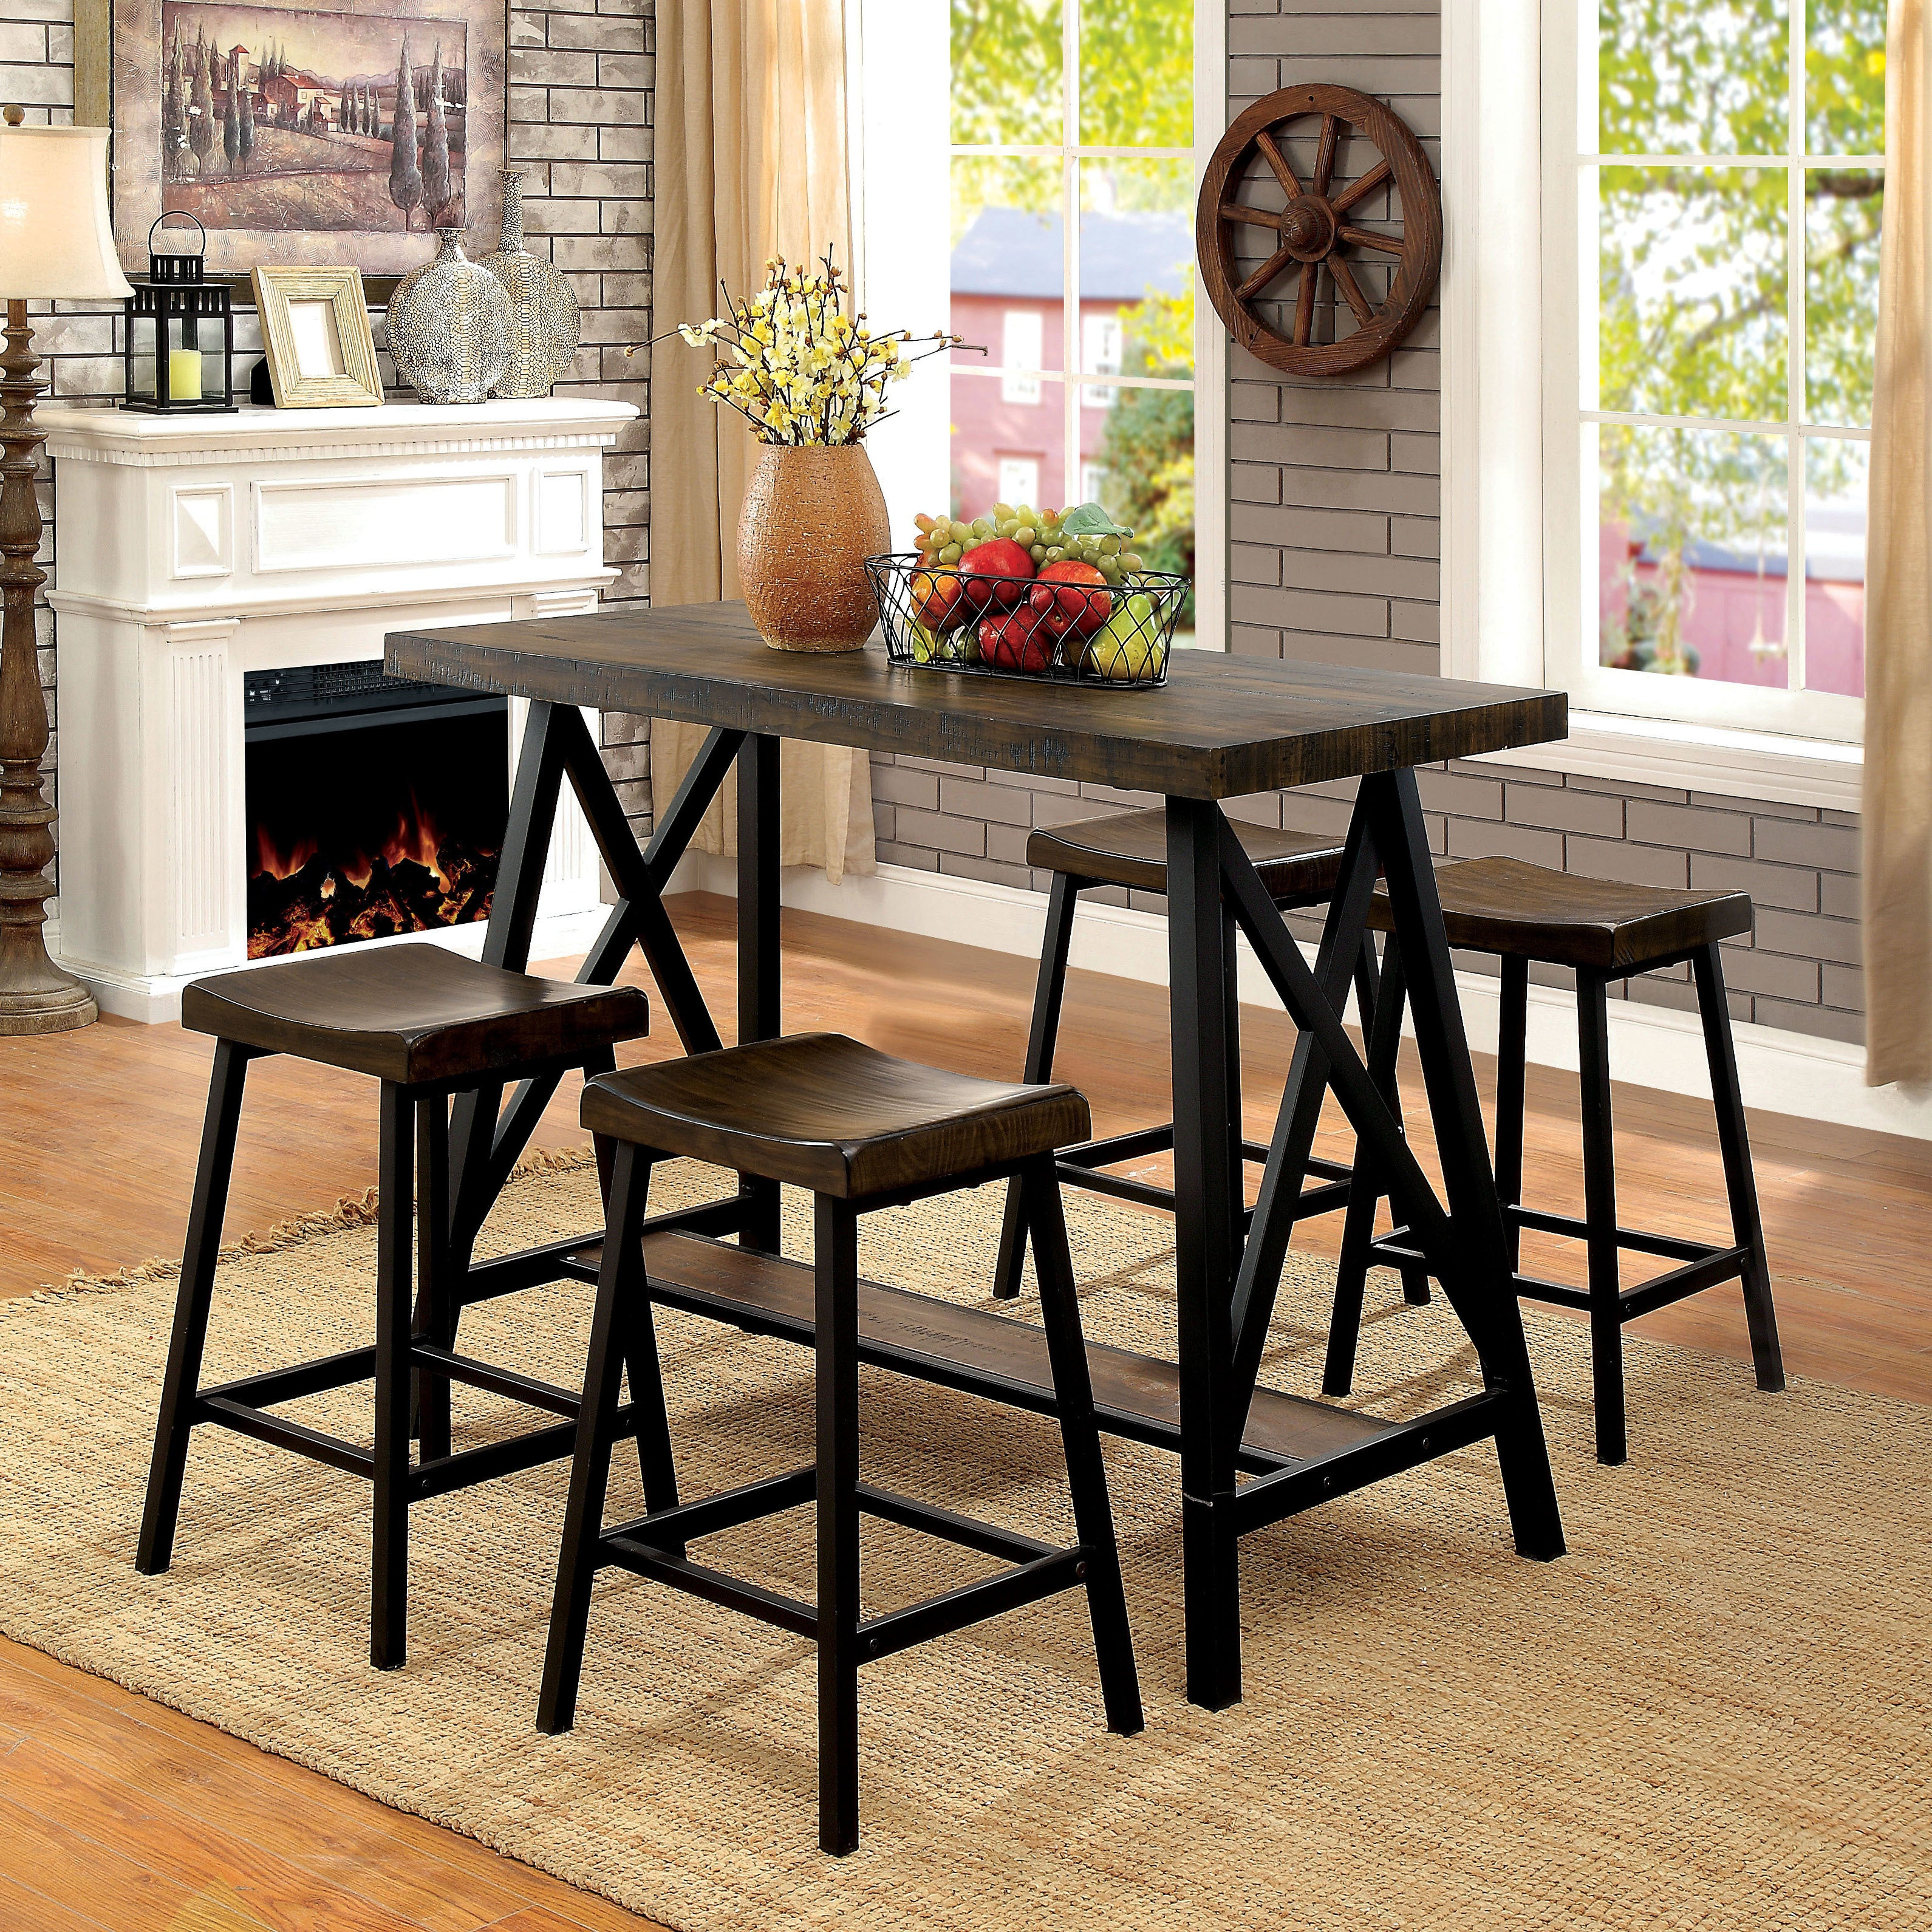 Shop Furniture Of America Hollenbeck Rustic Medium Weathered Oak U0026 Black Counter  Height Table   On Sale   Free Shipping Today   Overstock.com   18214711